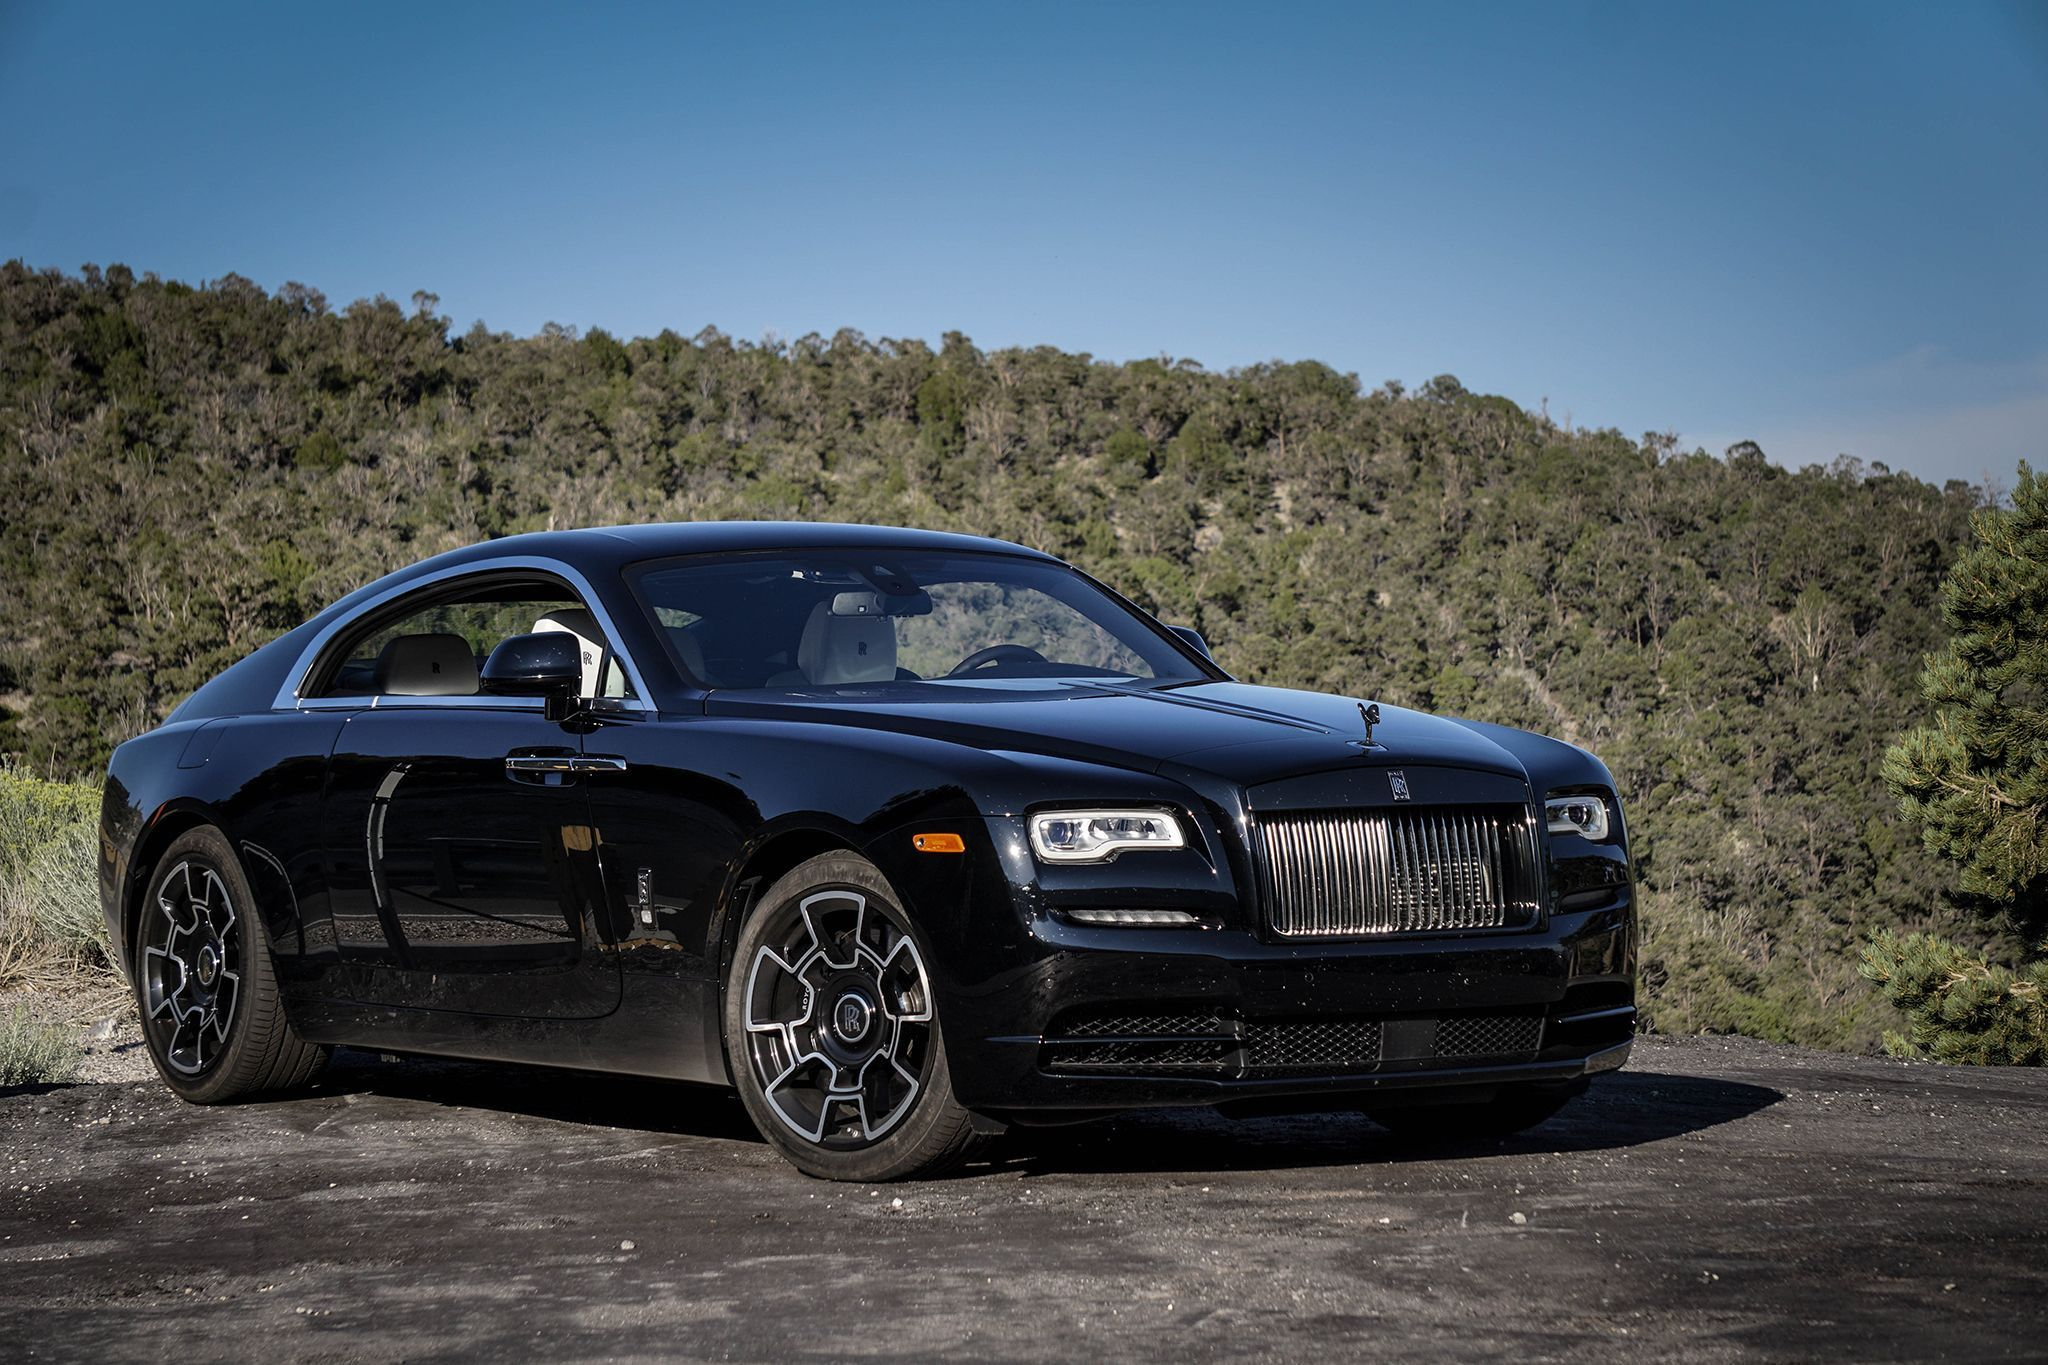 2020 Rolls Royce Wraith Rumors And Price In 2020 Rolls Royce Wraith Rolls Royce Wraith Black Rolls Royce